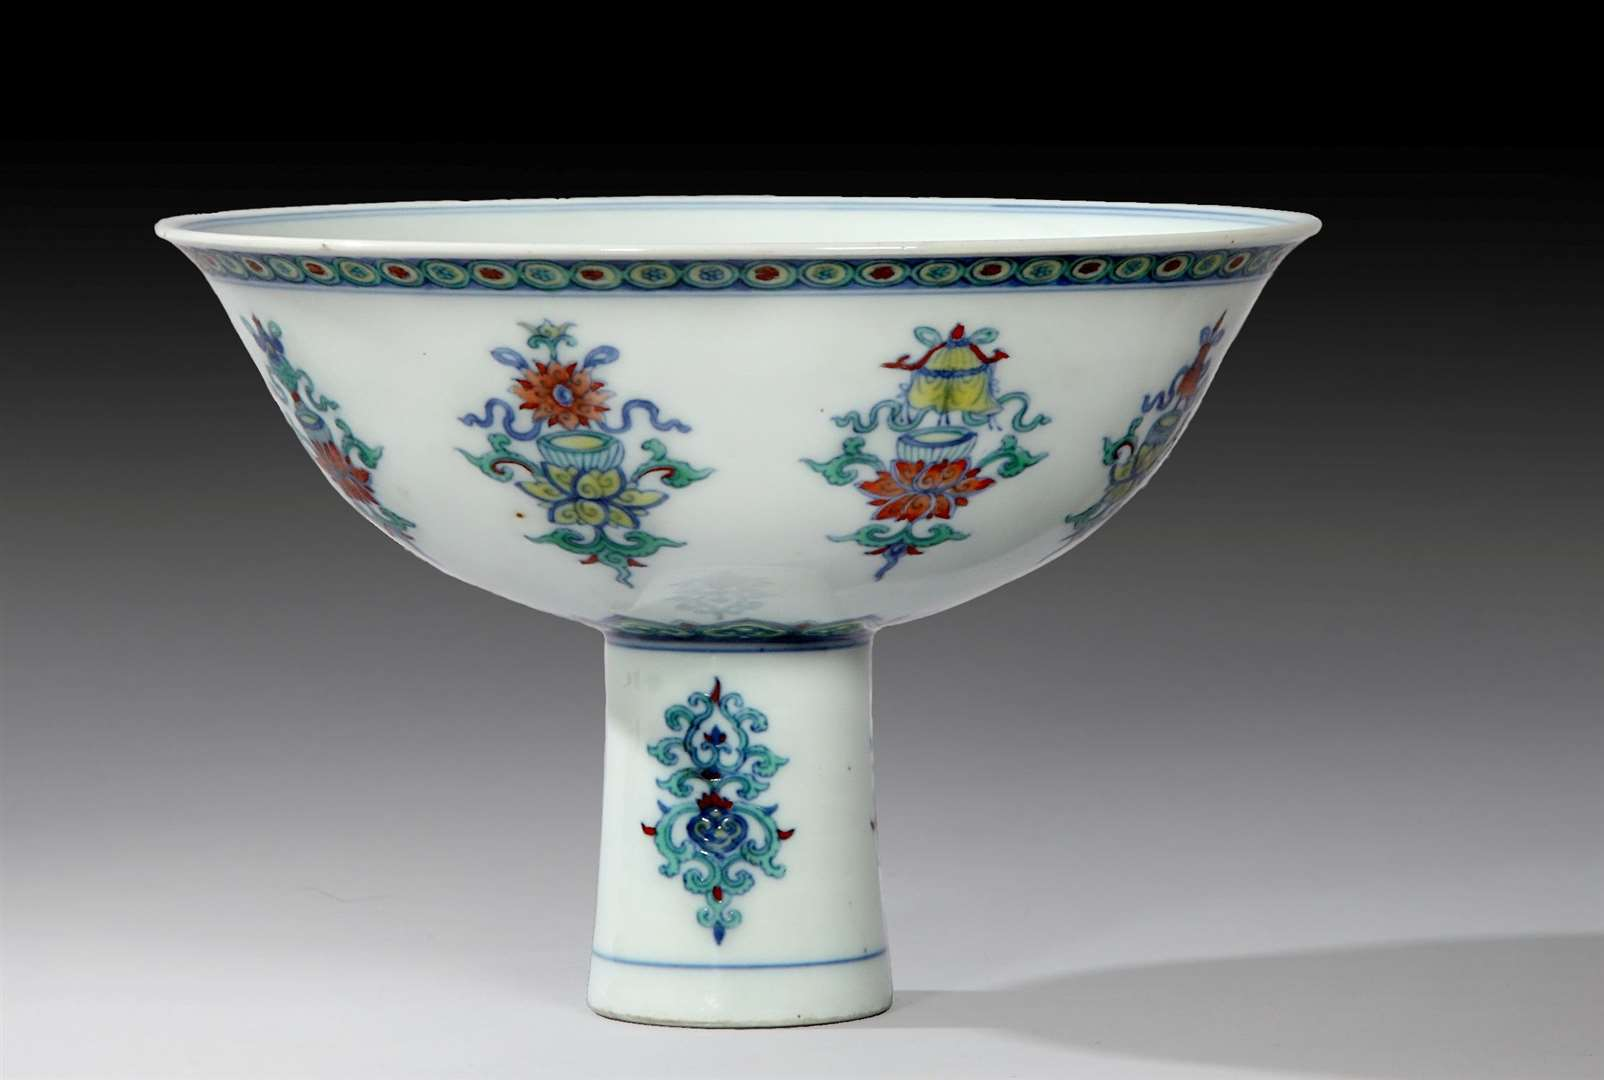 A rare Chinese porcelain Doucai 'chicken cup' sold for £155,000